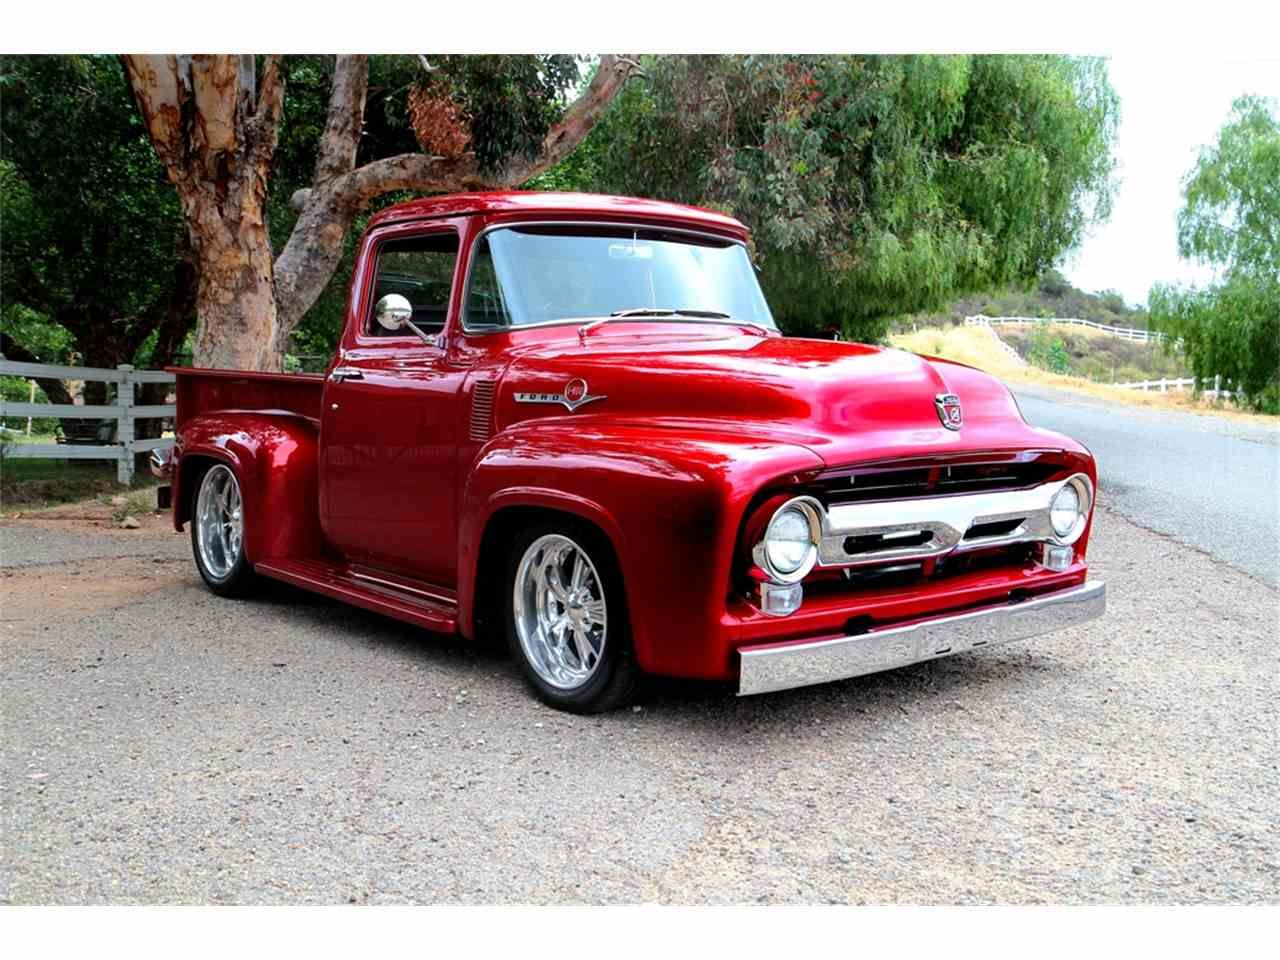 Pin by Neville Bastian on Classic USA cars that stand out ...